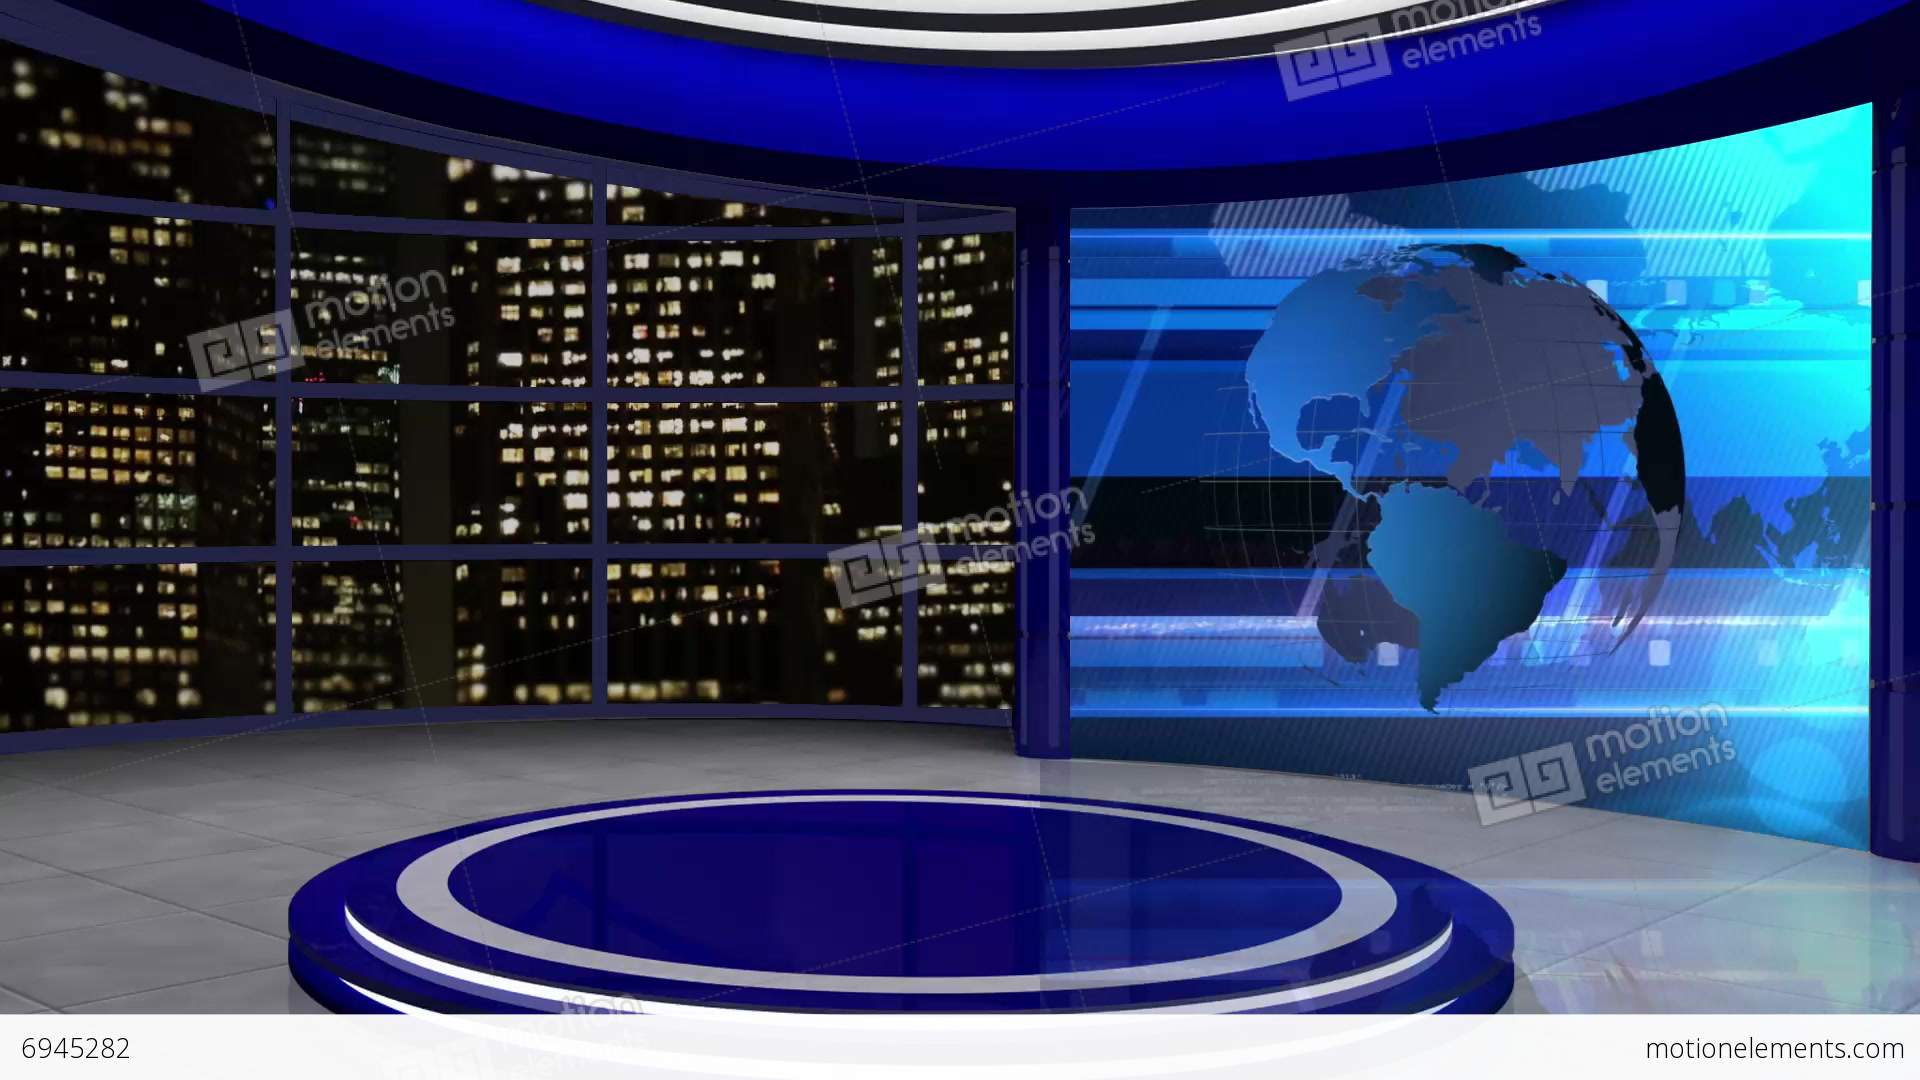 News TV Studio Set 61  Virtual Background Loop Stock video footage  6945282